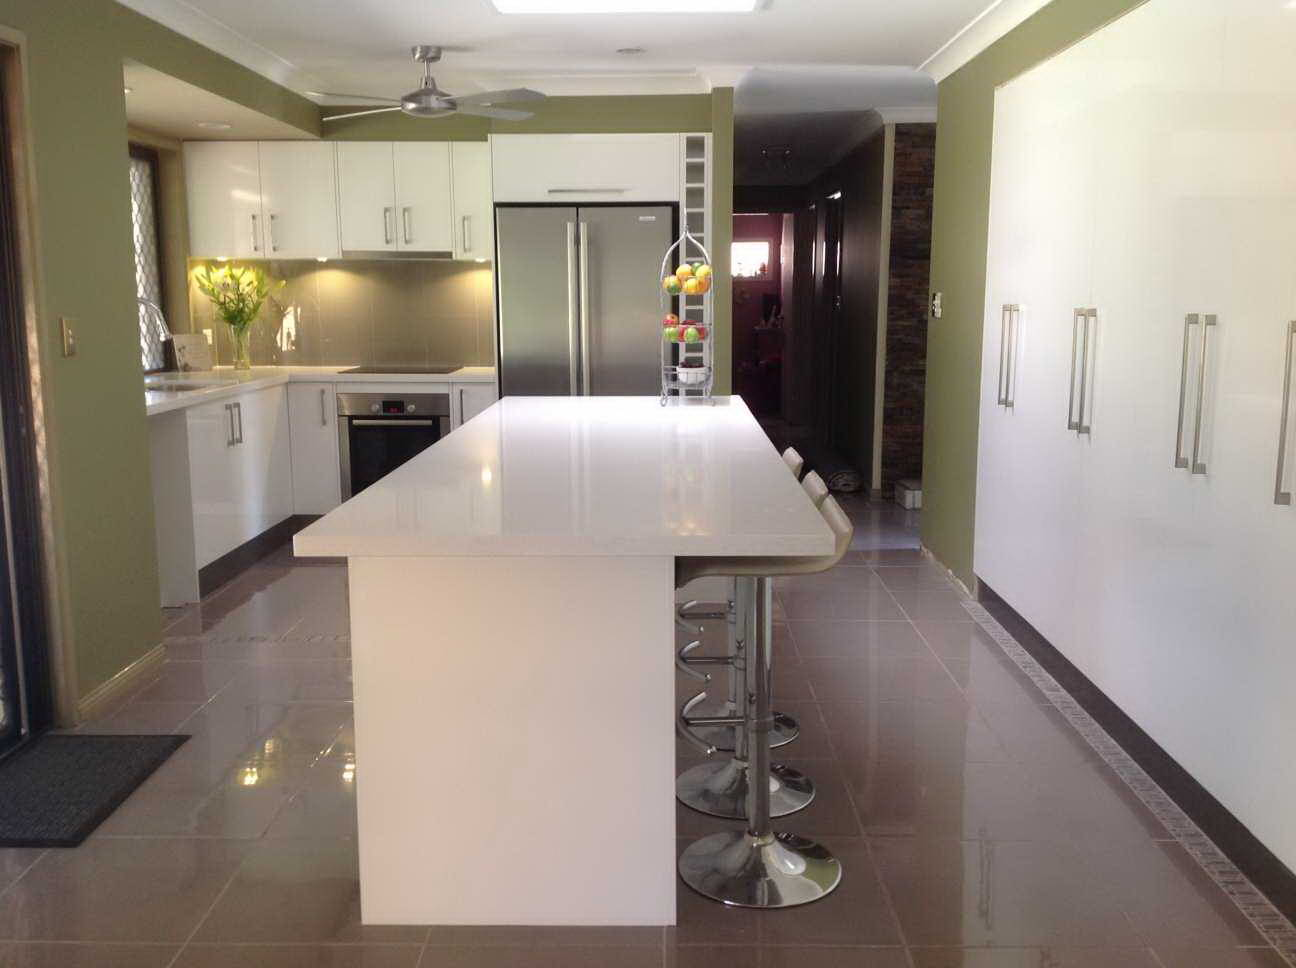 Kitchen Renovations - Gold Coast - The heart of the home - why the kitchen is important